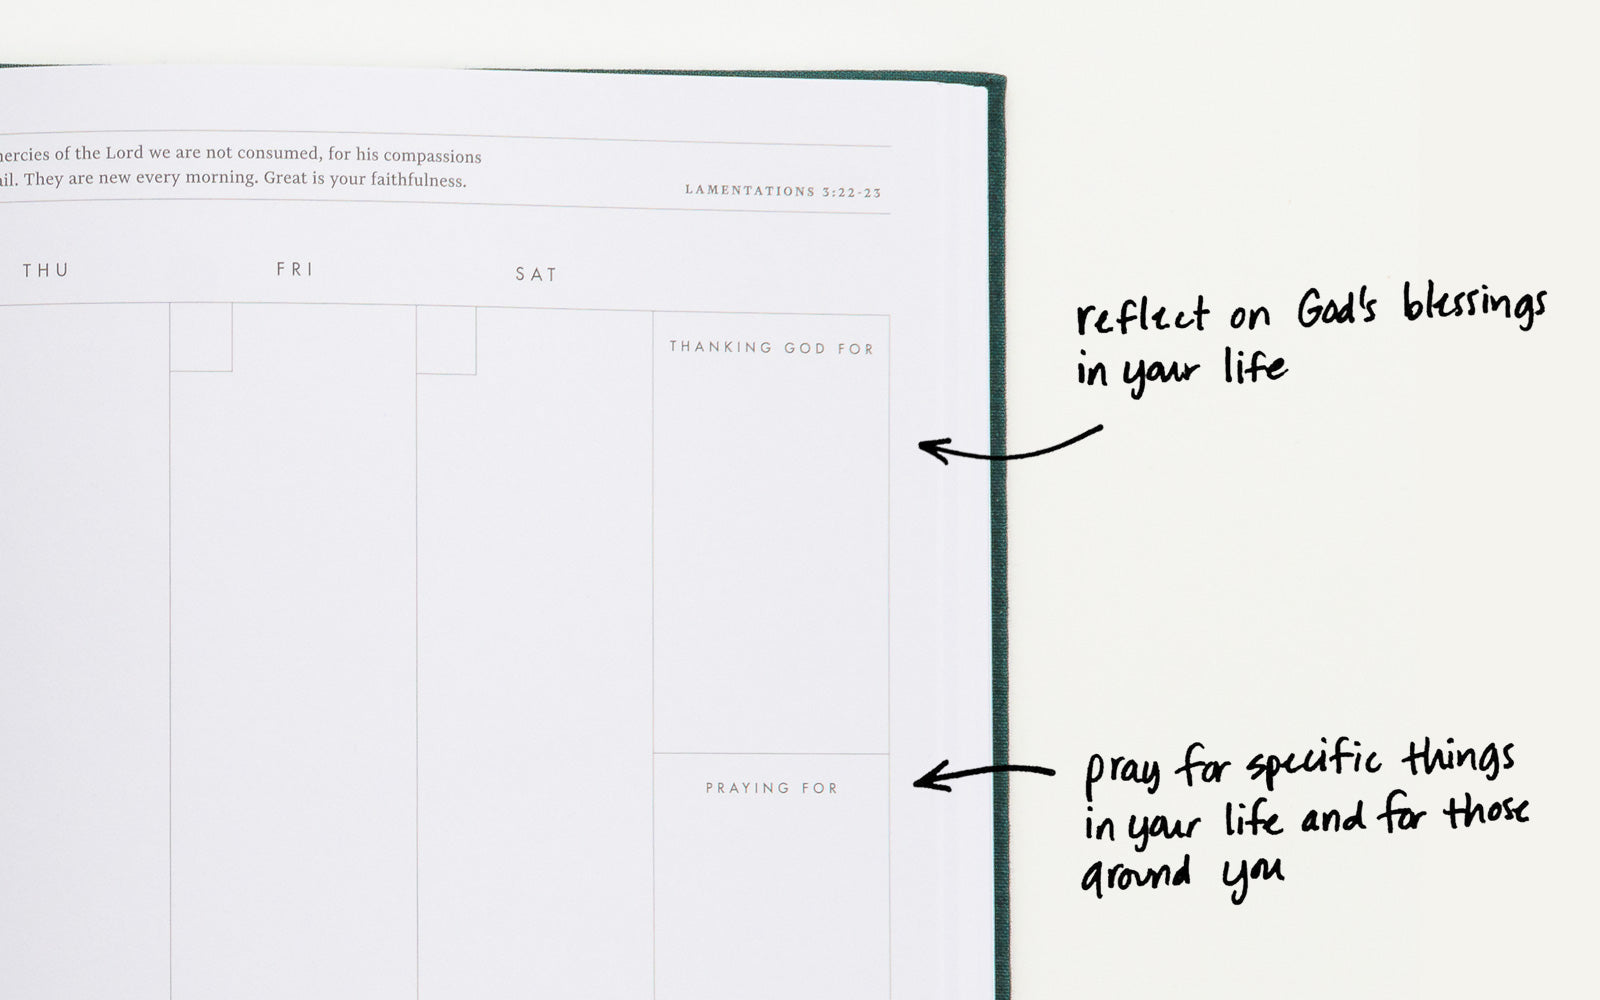 Reflect on God's blessings in your life, and pray for specific things and people around you